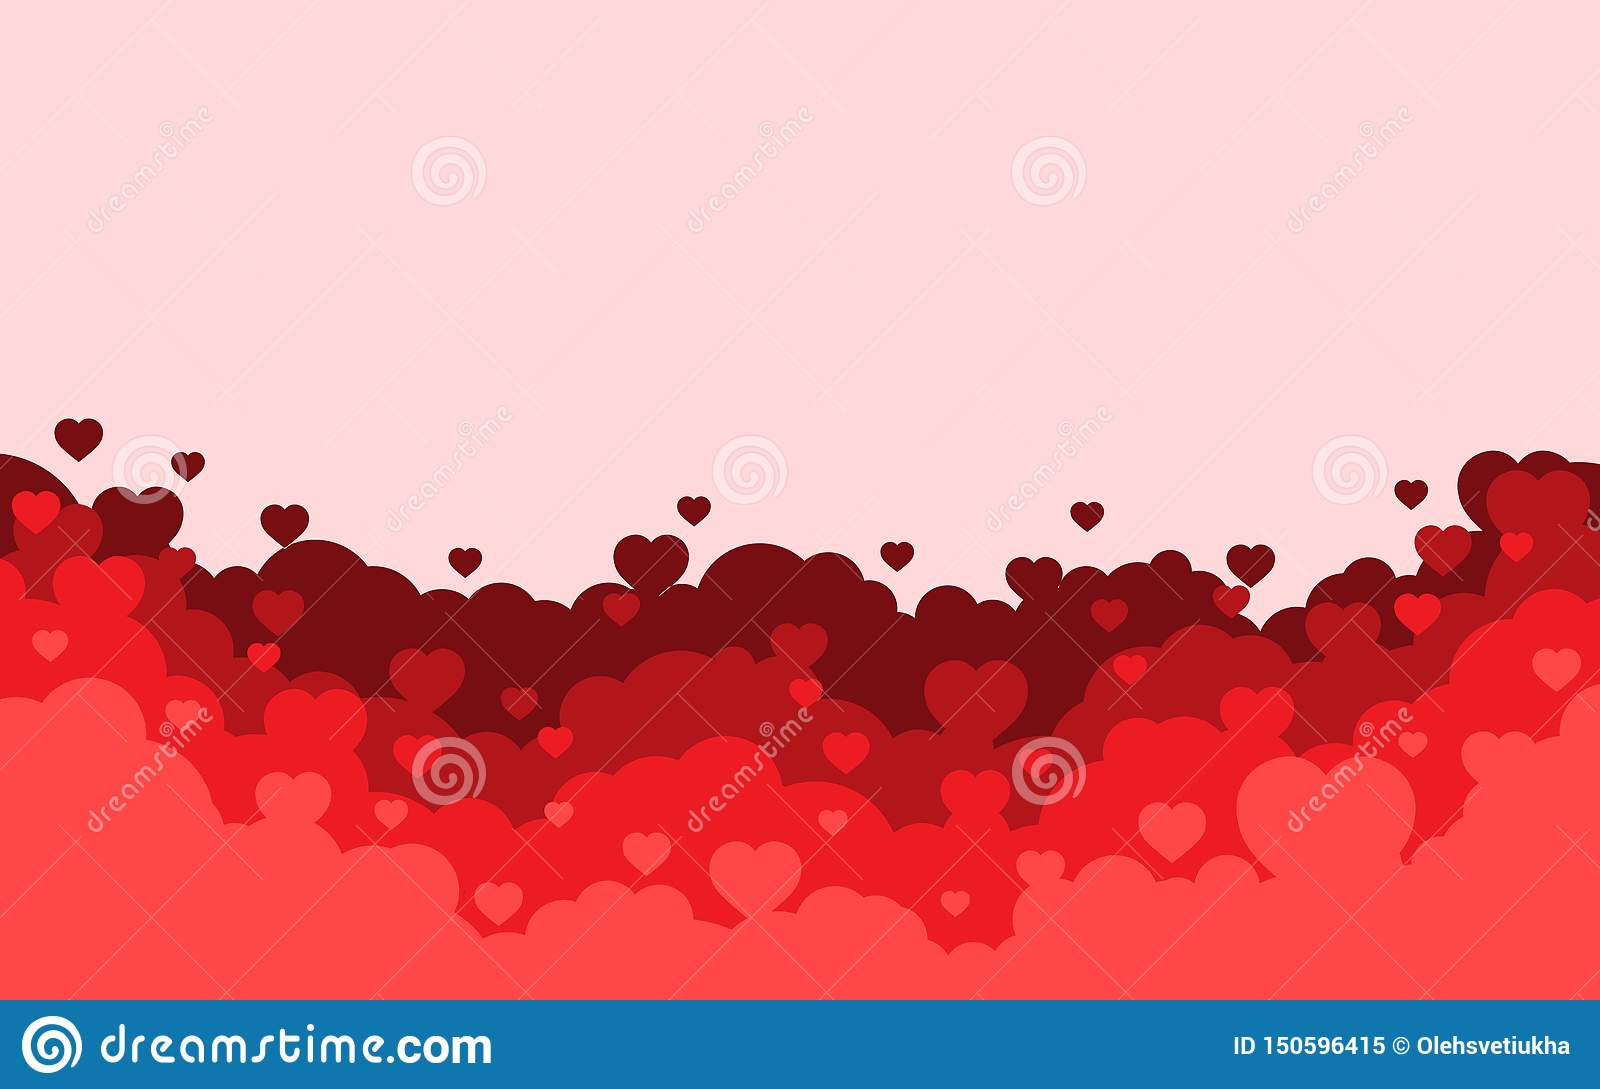 Cloudy sky with red hearts background. Valentines day holiday card. Cartoon flat style design. Vector illustration